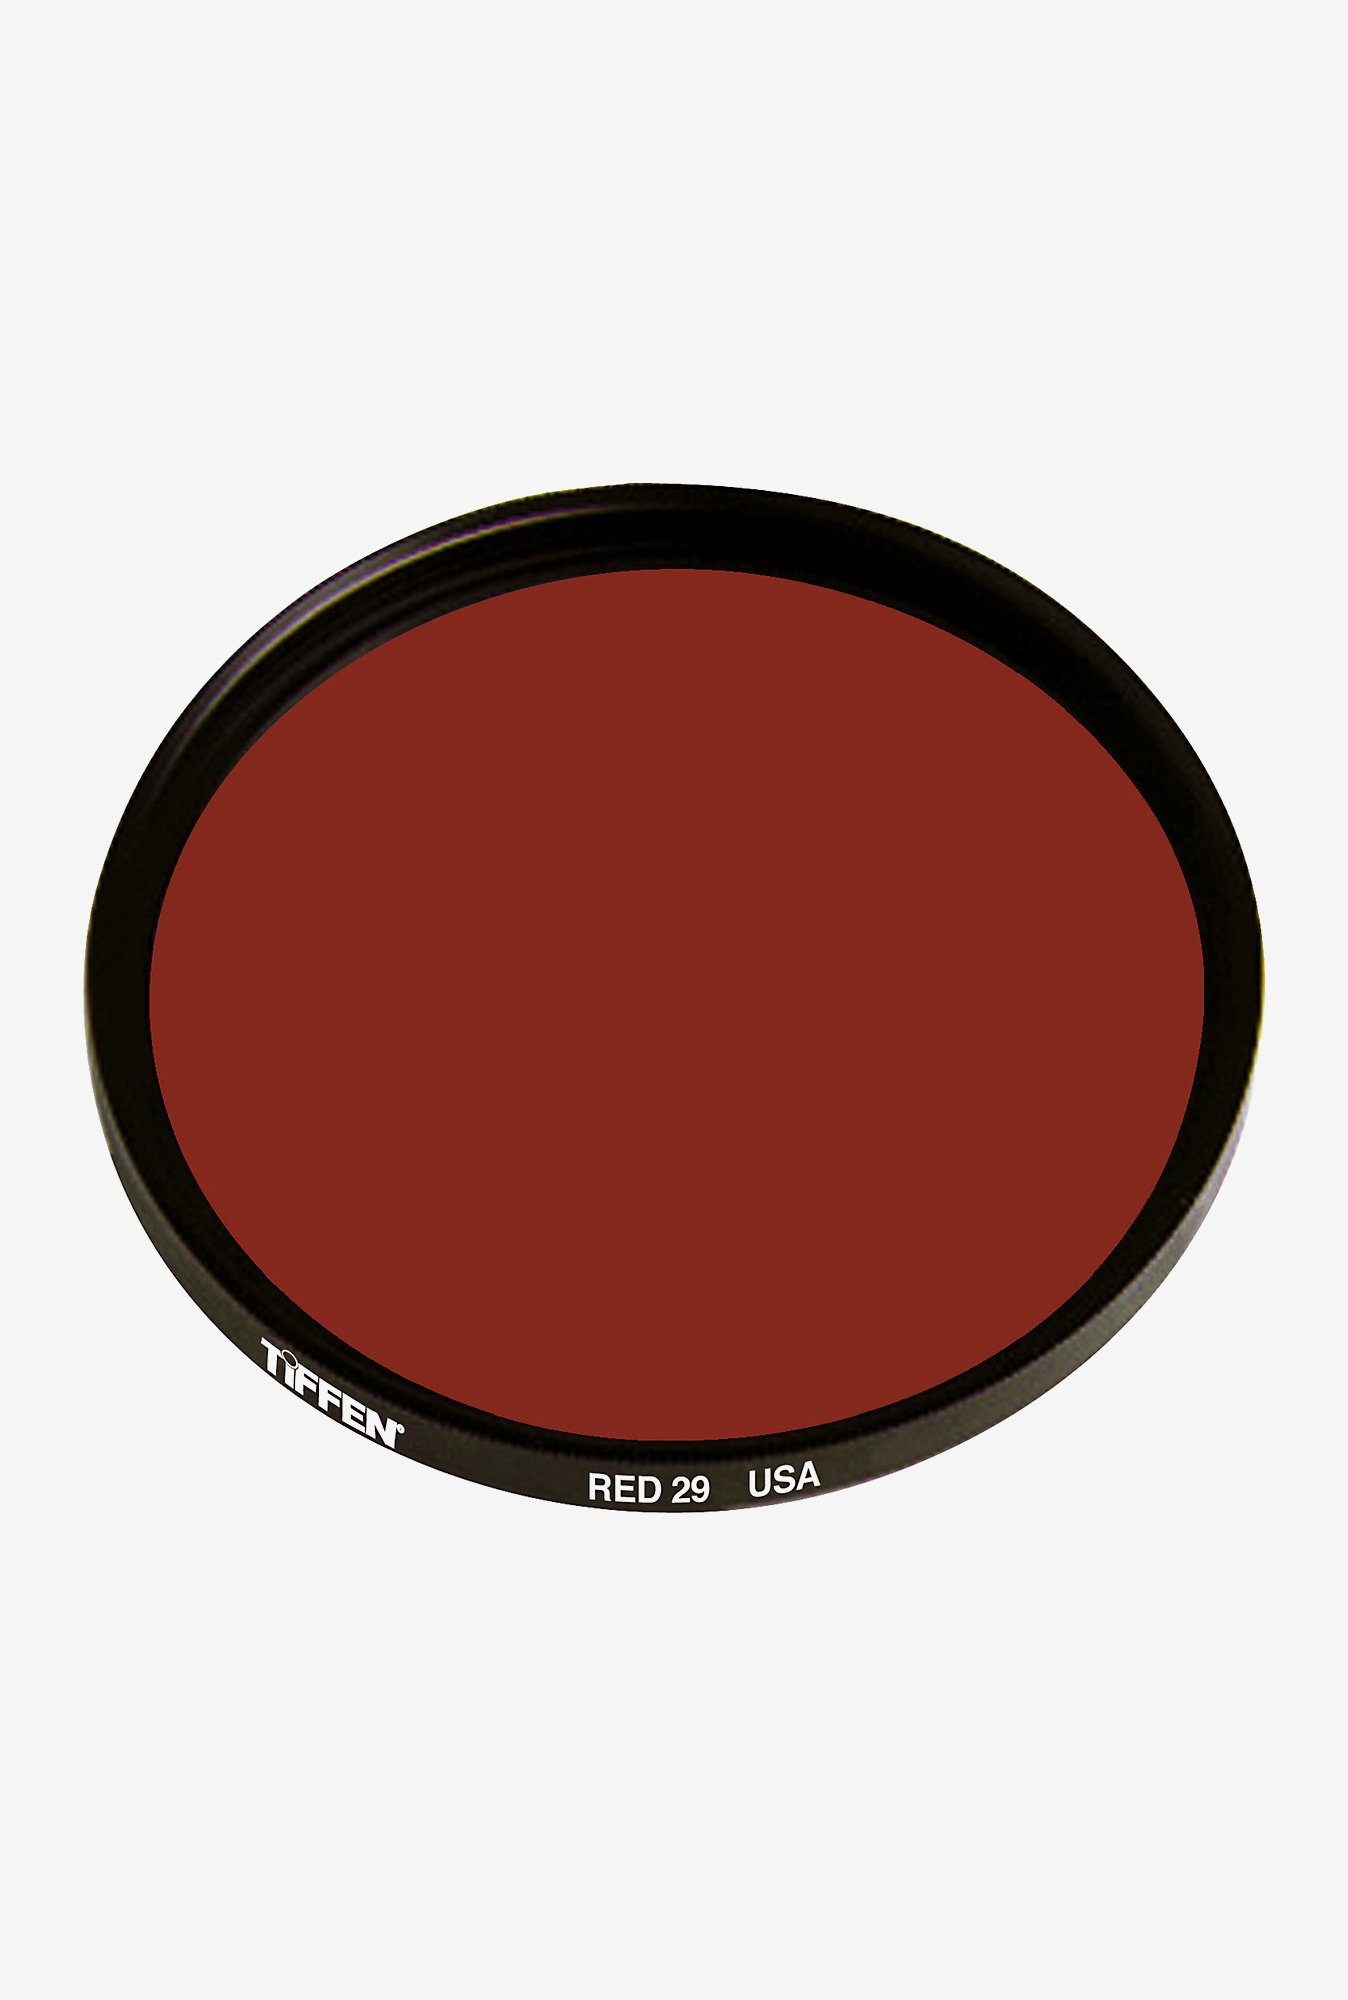 Tiffen 52mm Filter (Red 29)